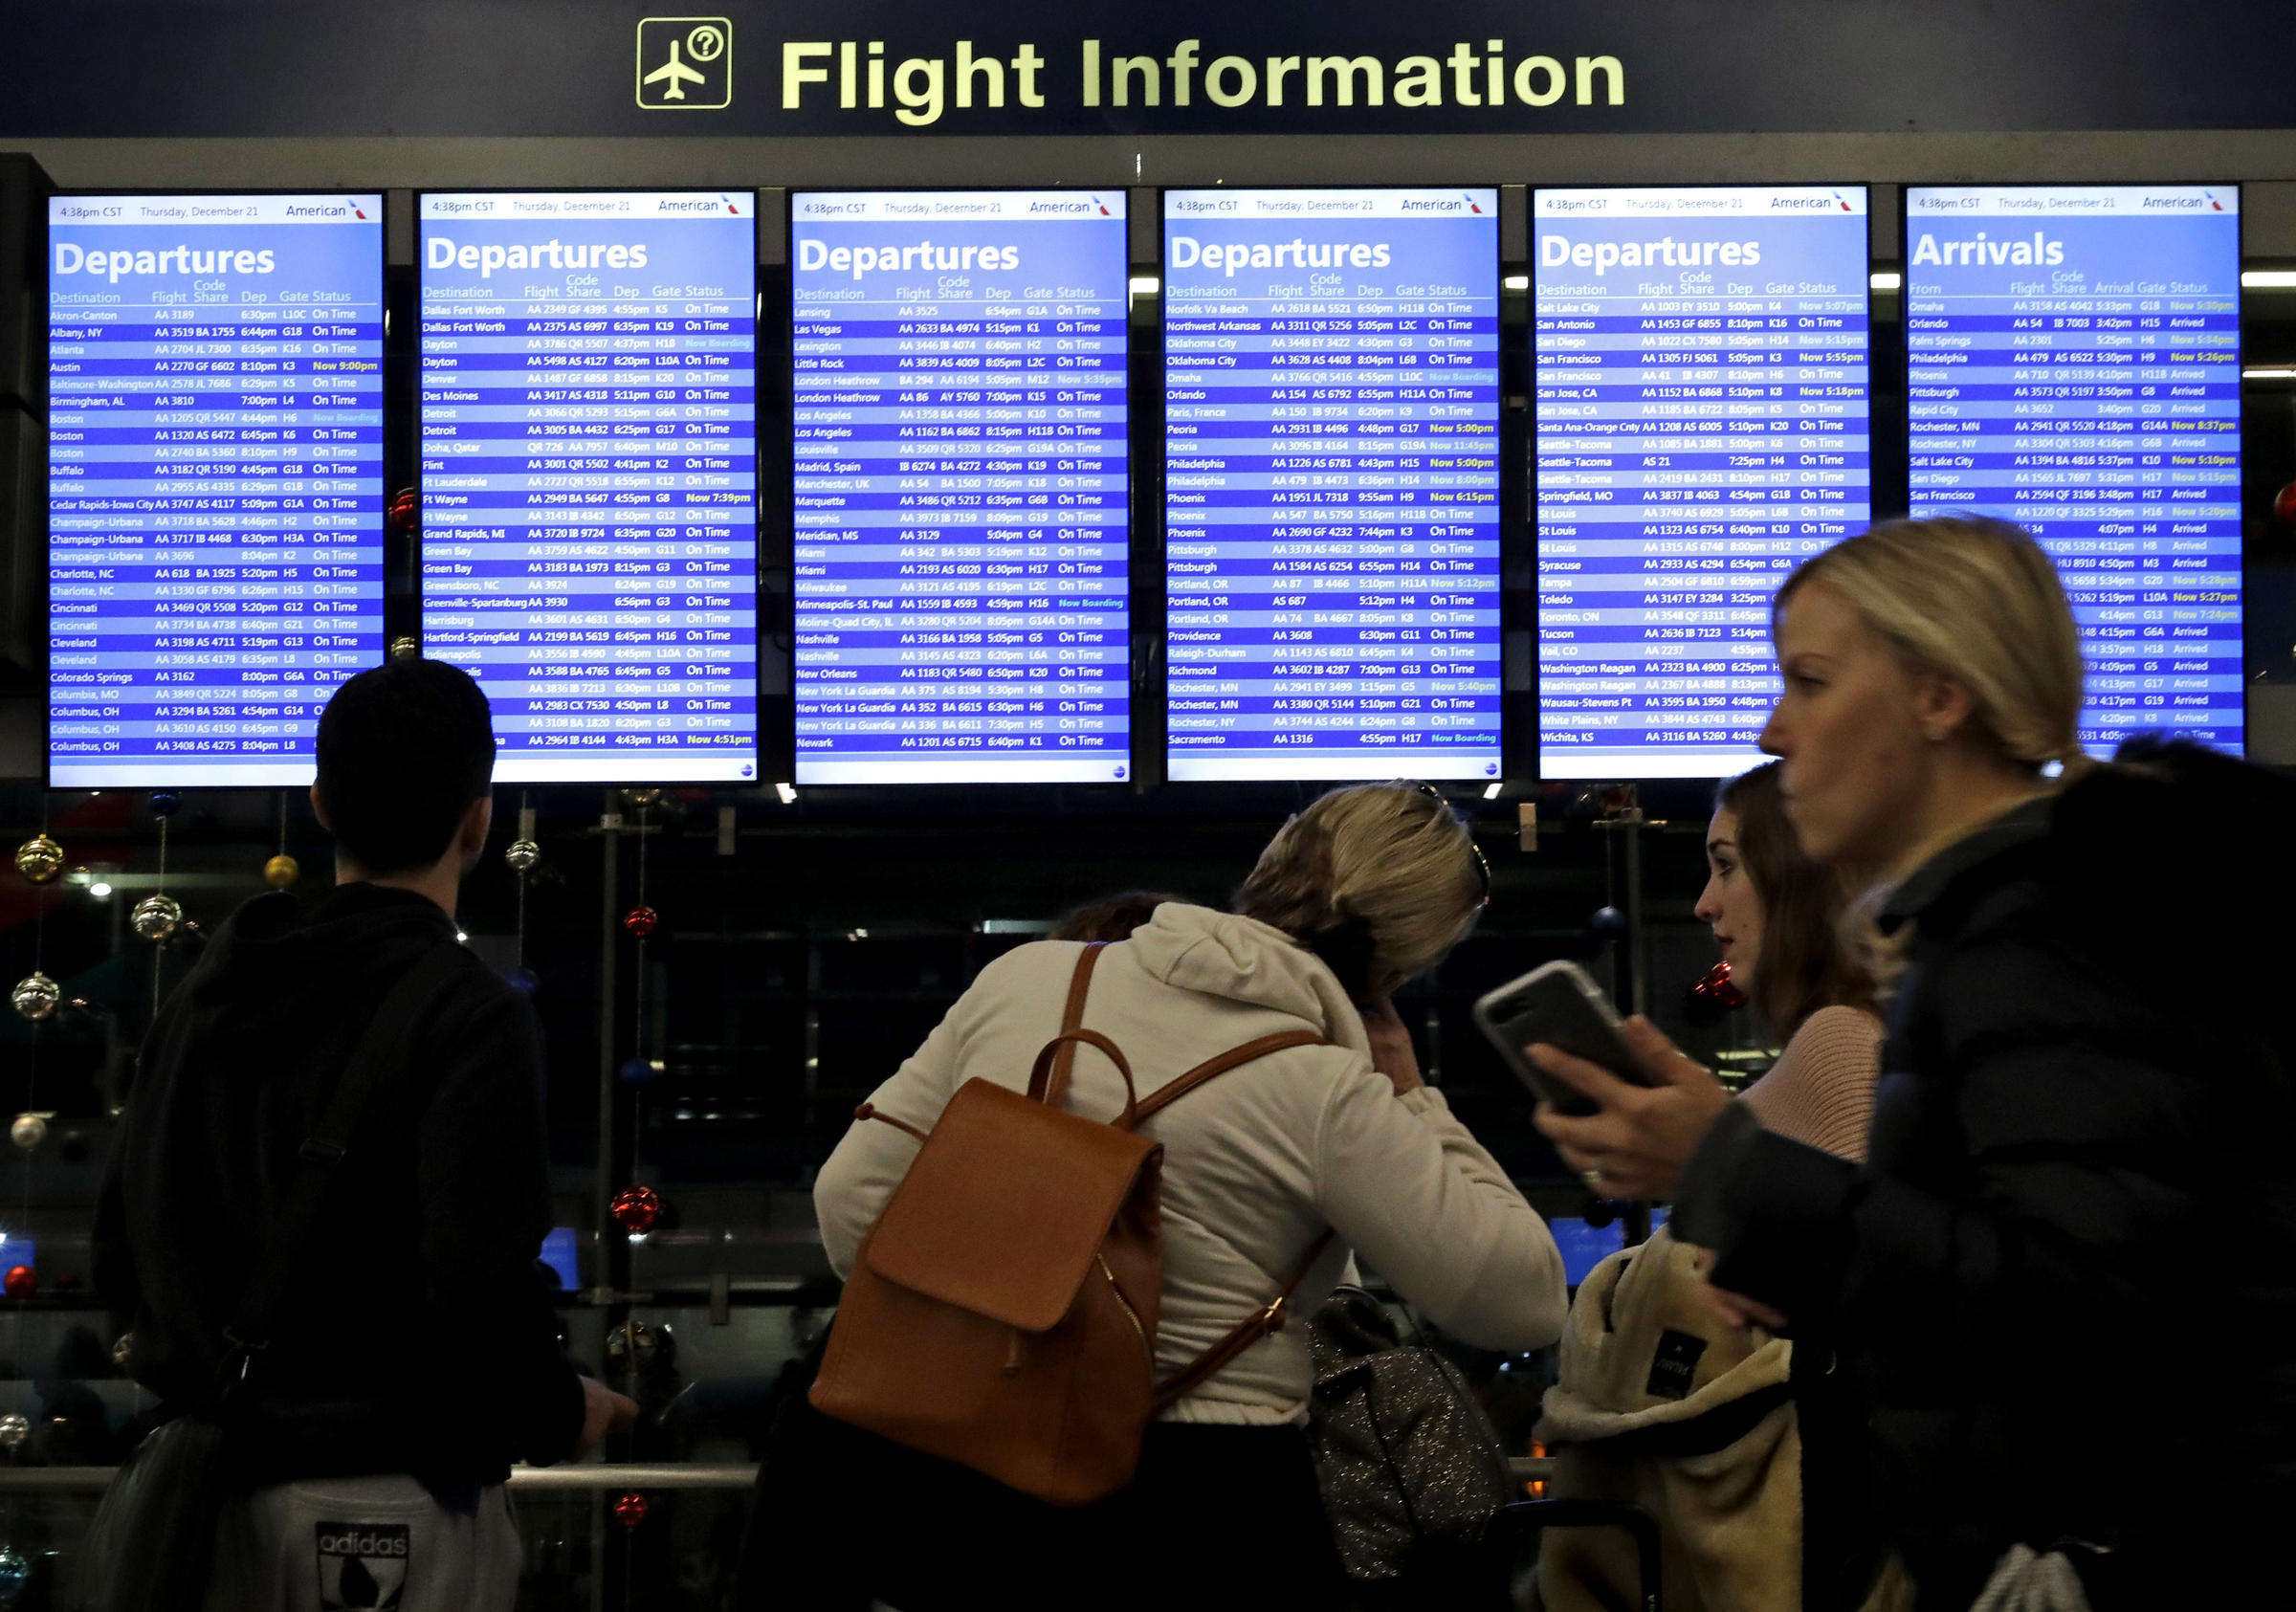 Commercial Airliners Had Their Safest Year Ever, Flight Trackers Say